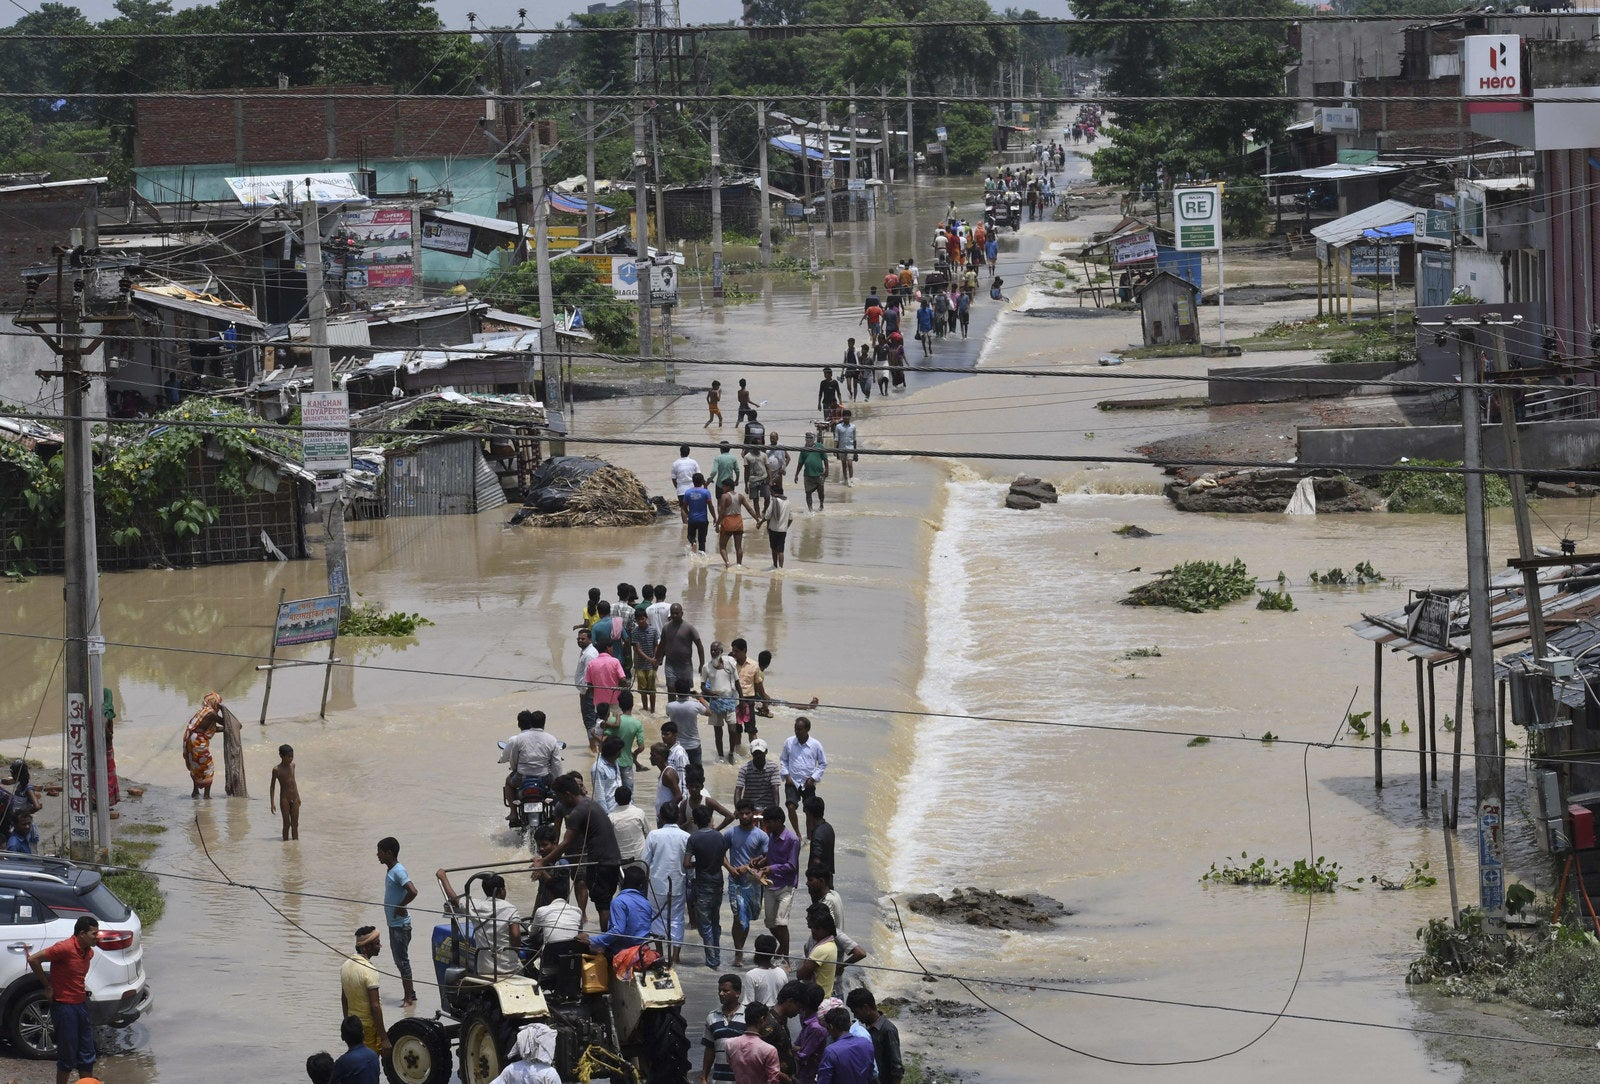 Flood-affected villagers move out in search of safer places in Bihar, India.